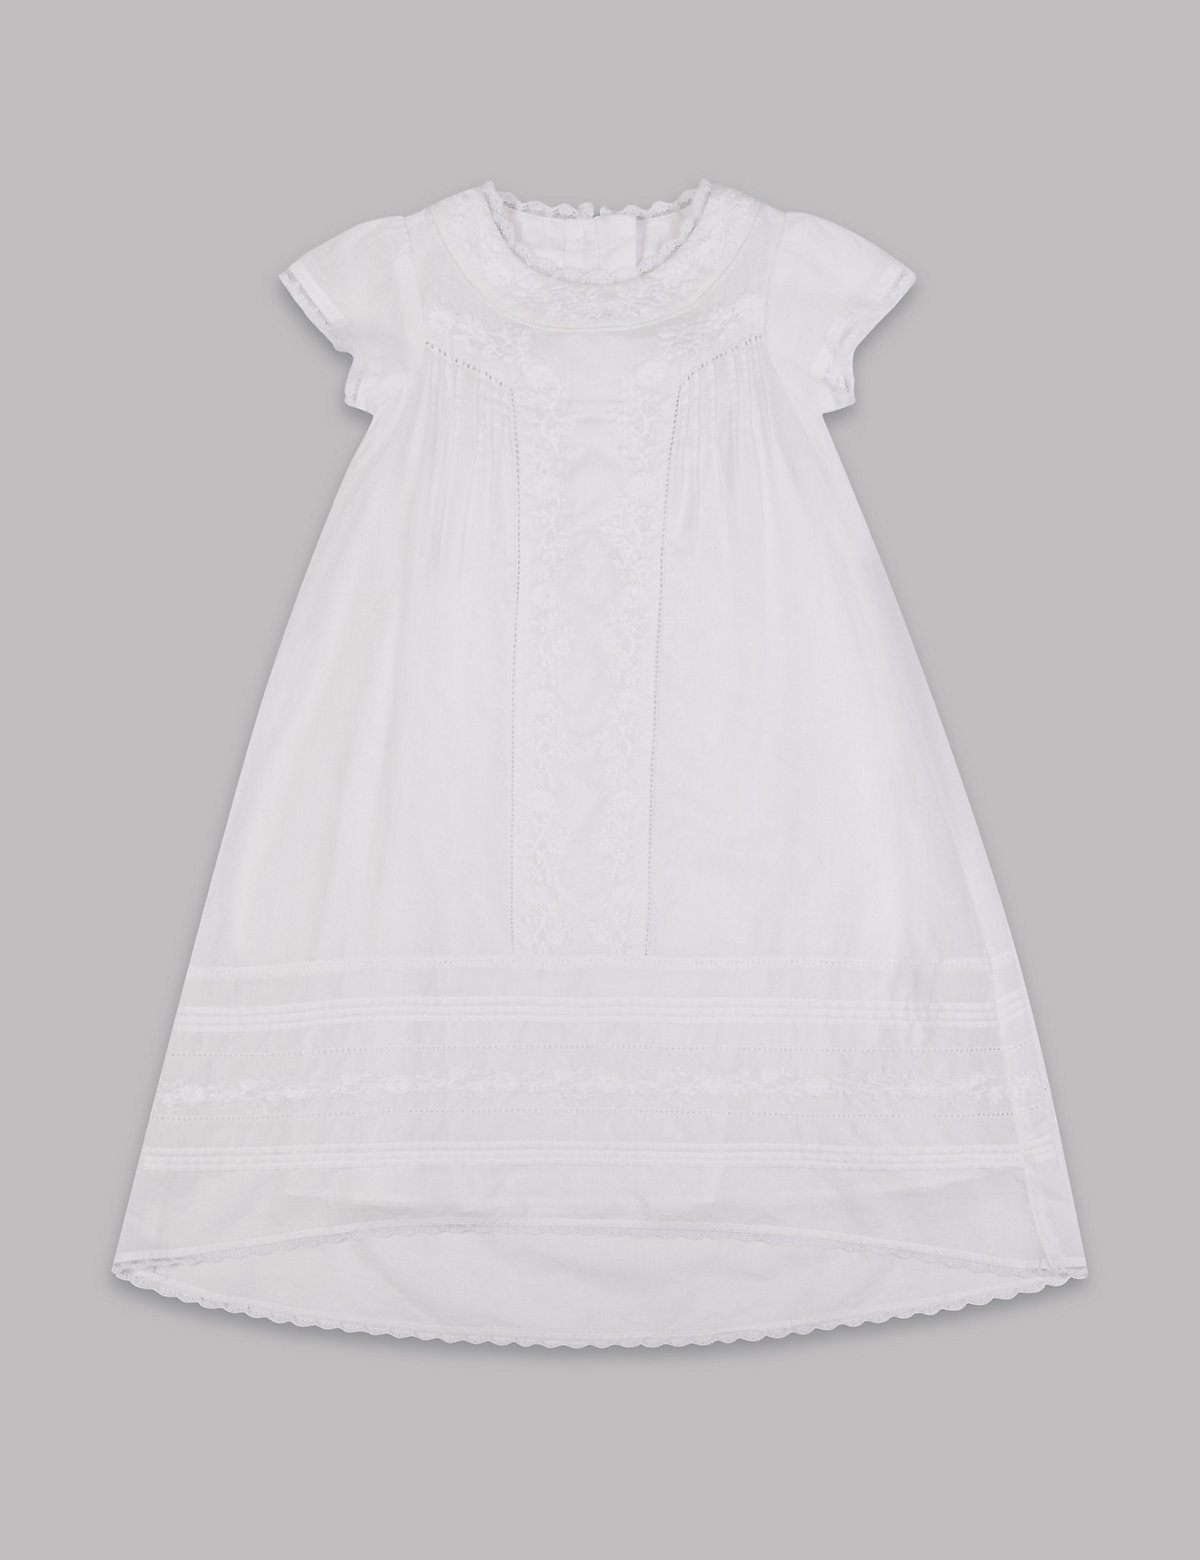 Autograph Pure Cotton Embroidered Christening Baby Dress